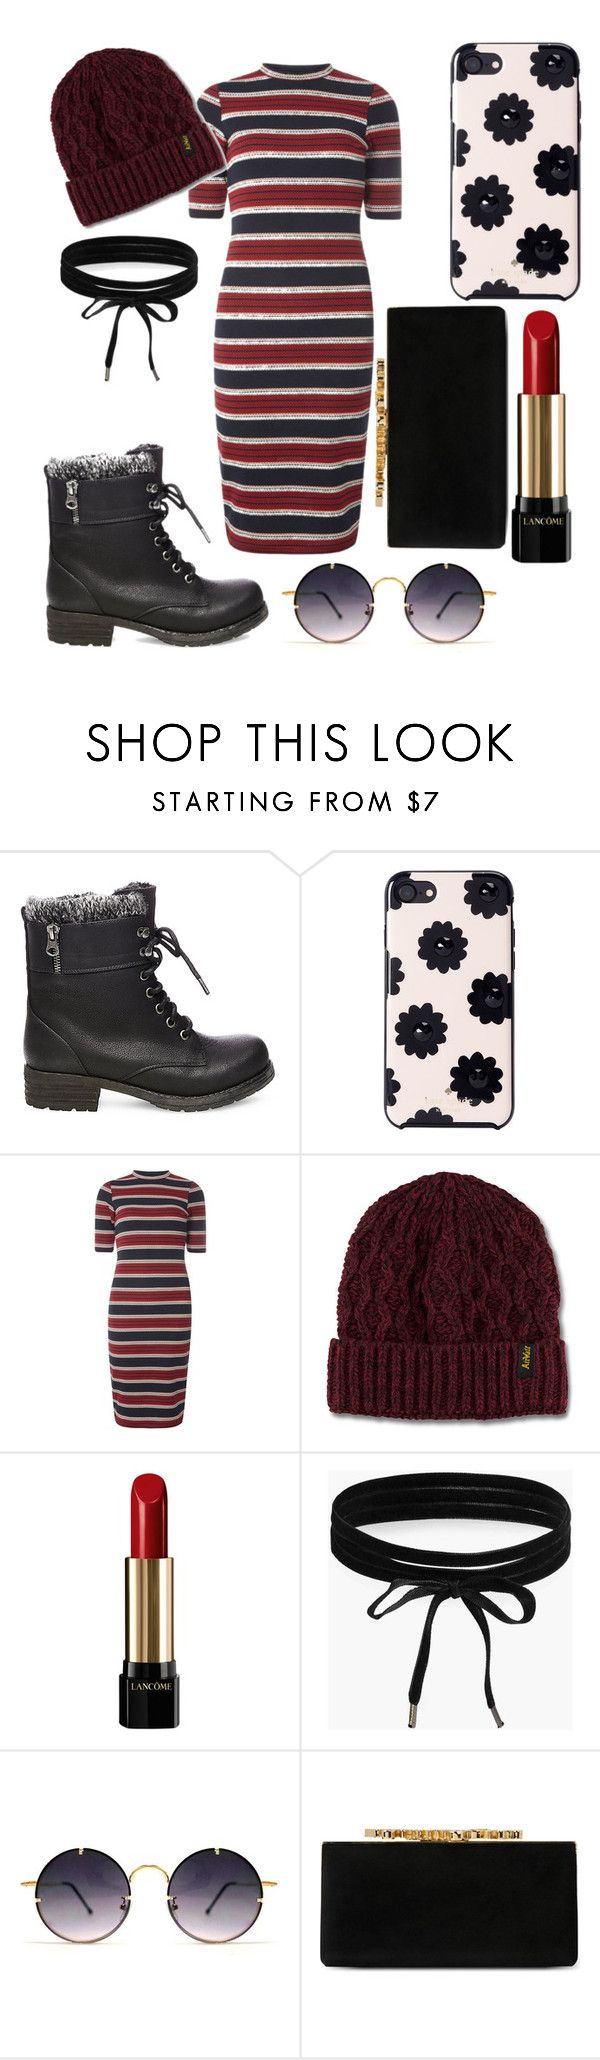 """lazy Sunday church outfit #whatiwouldwear"" by lisabeebe010 ❤ liked on Polyvore featuring Steve Madden, Kate Spade, Dorothy Perkins, Dr. Martens, Lancôme, Boohoo, Spitfire and Jimmy Choo"